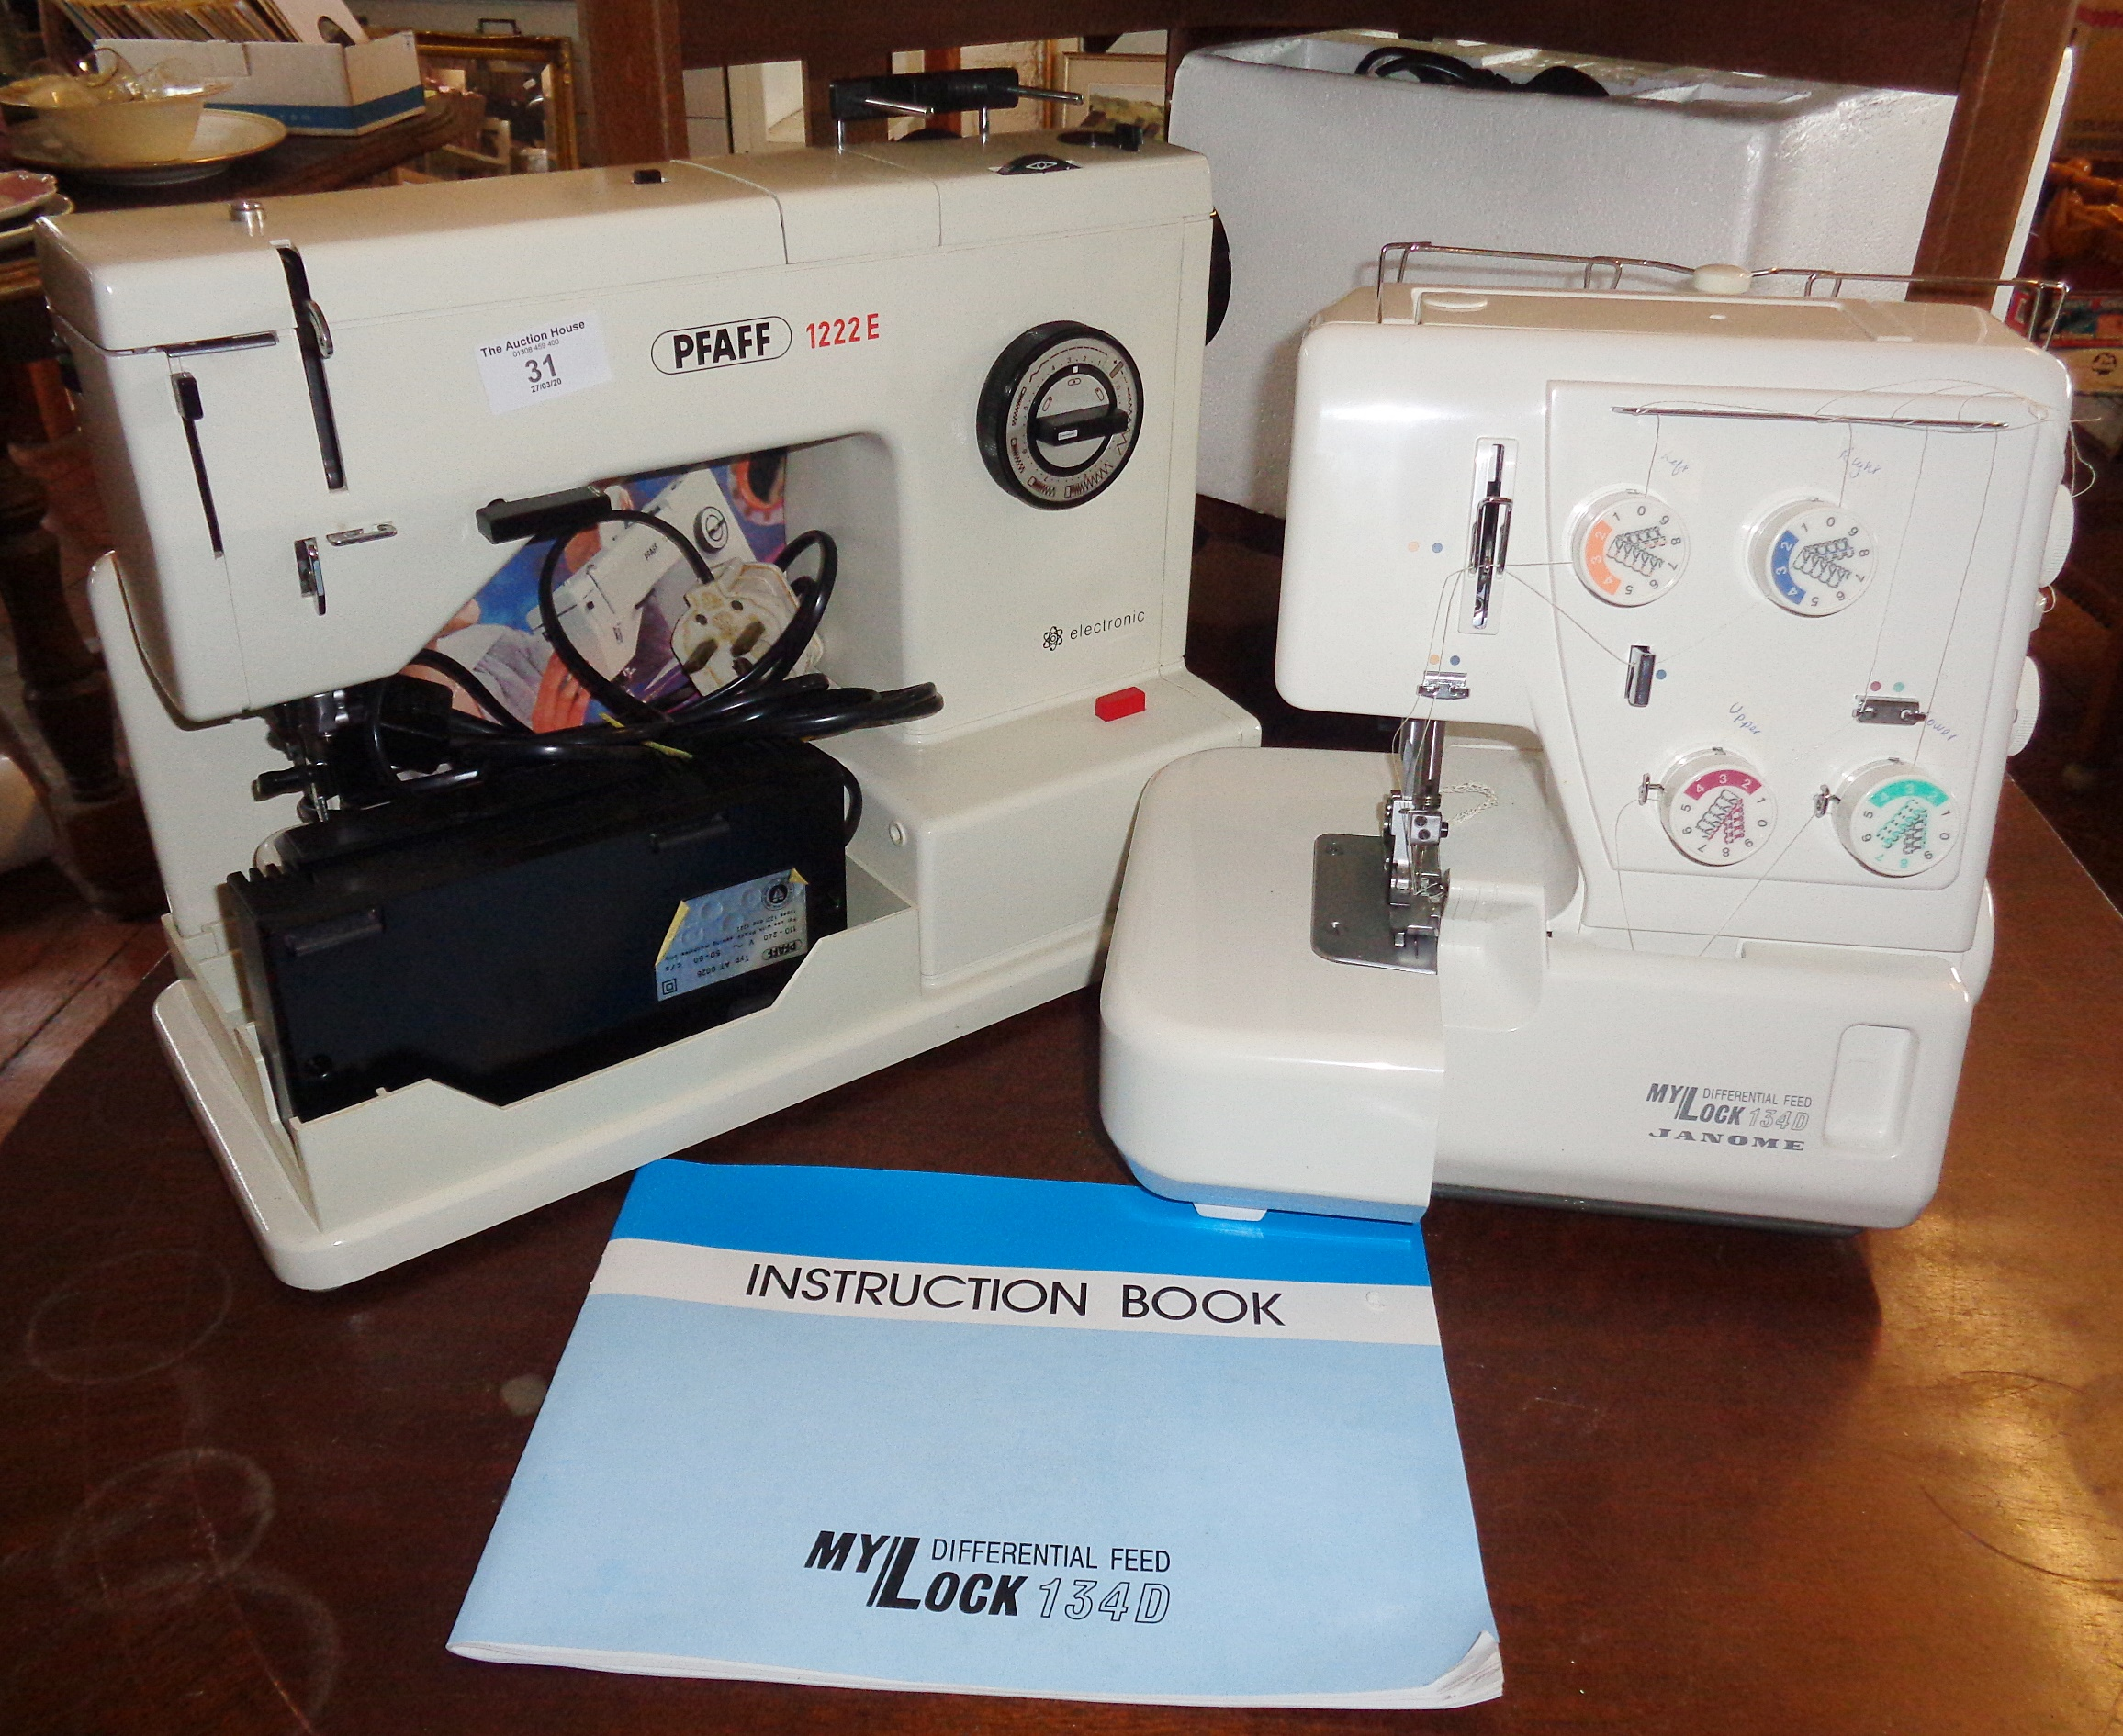 Lot 31 - Pfaff 1222E electric sewing machine and a My Lock Differential Feed 134D overlocker